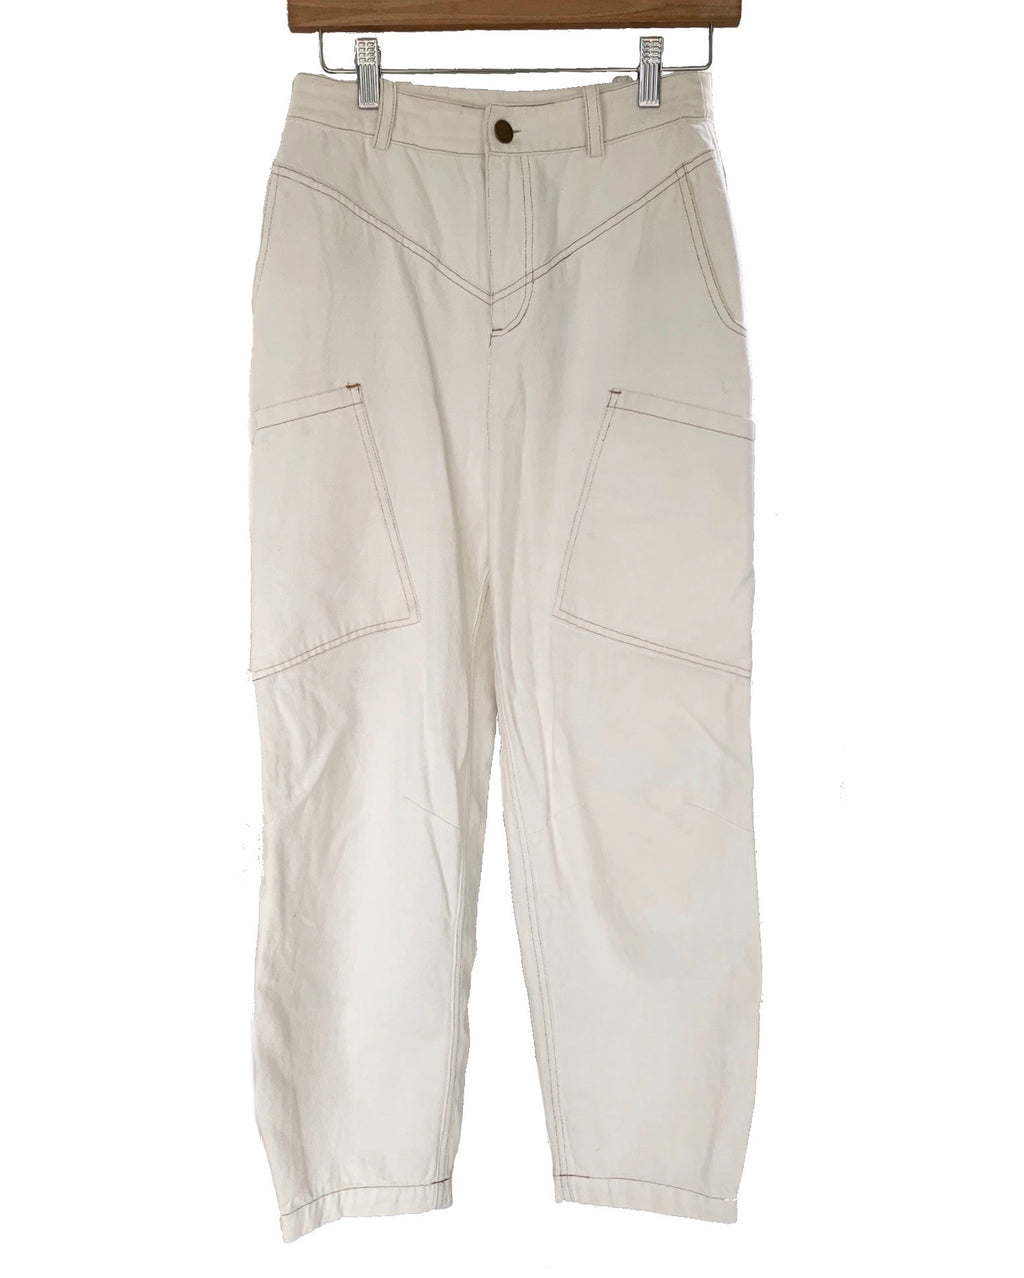 Lovers + Friends Micah Pant - Size XS